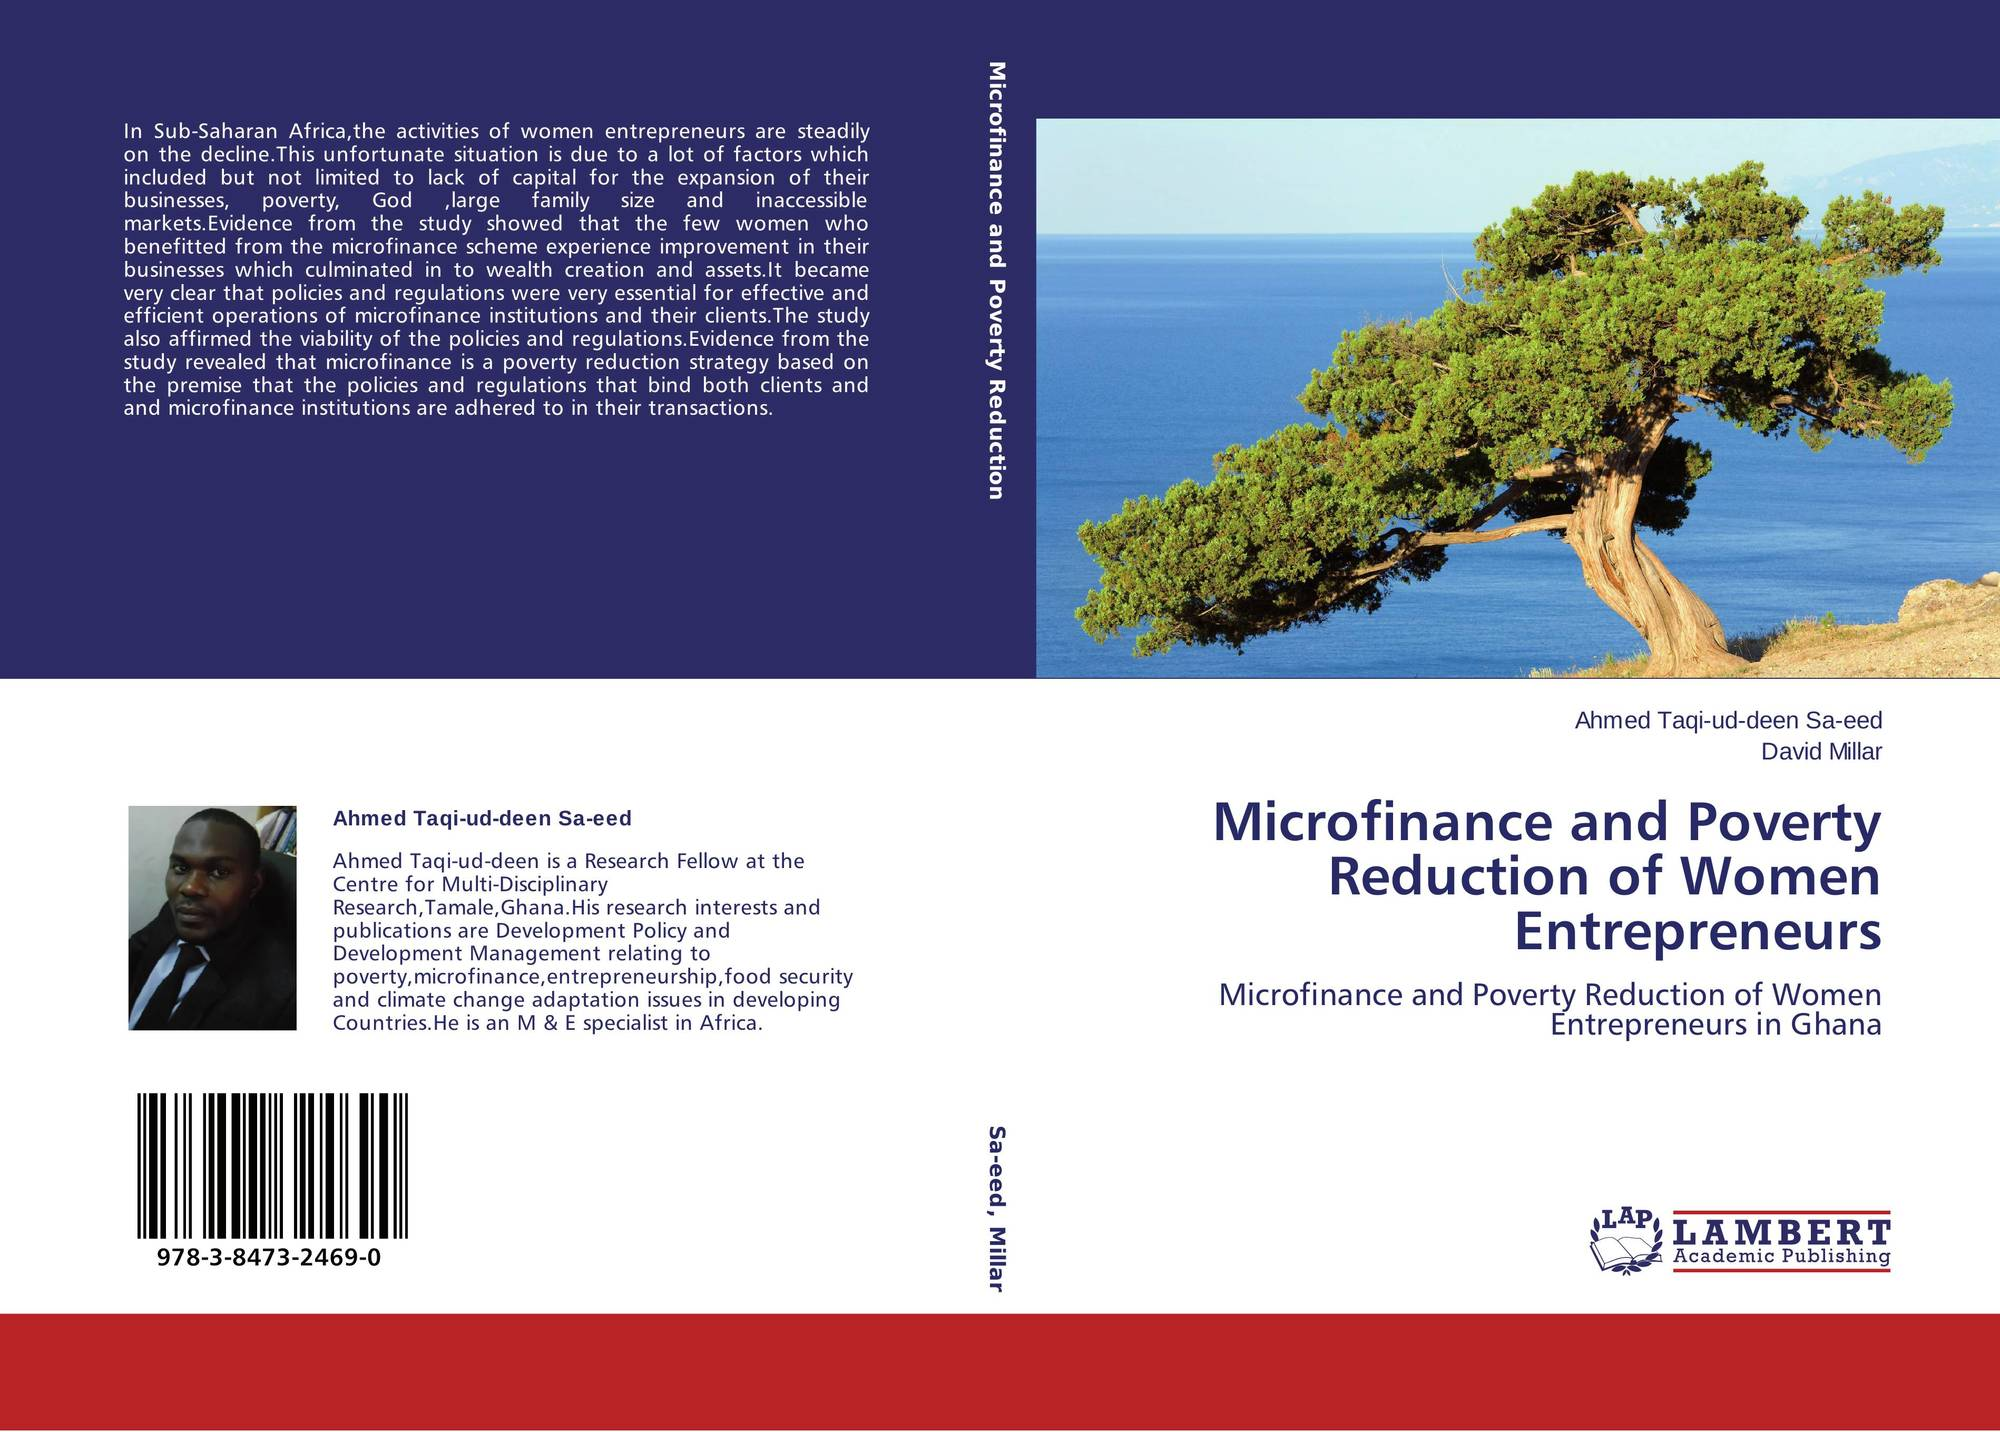 thesis on microfinance and poverty reduction